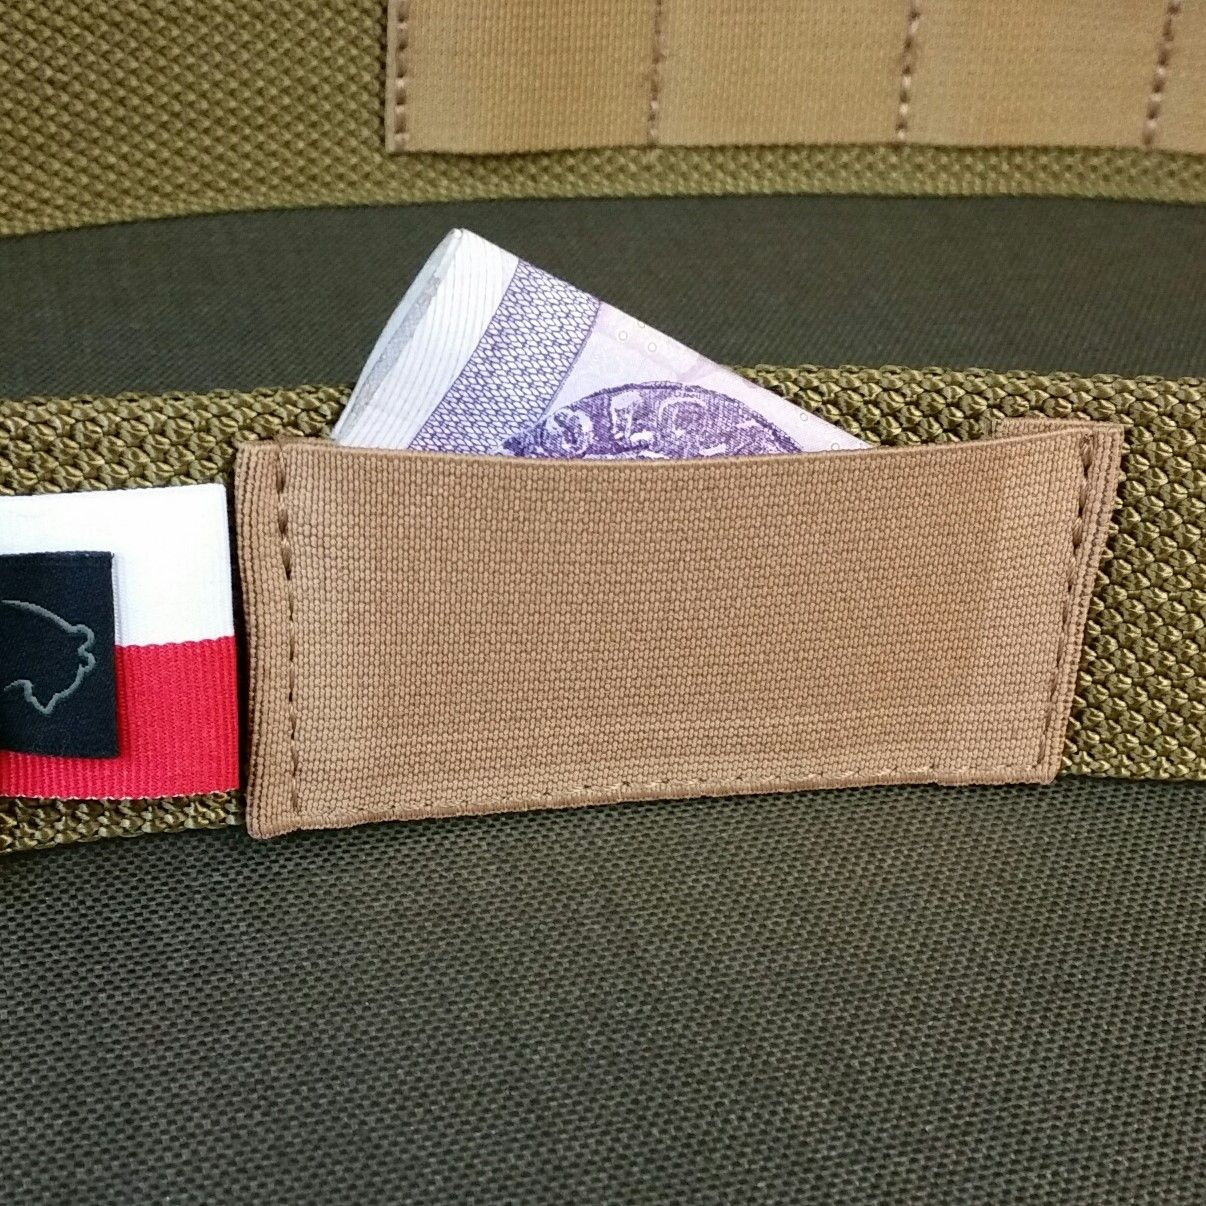 Opened elastic band pocket +9pln